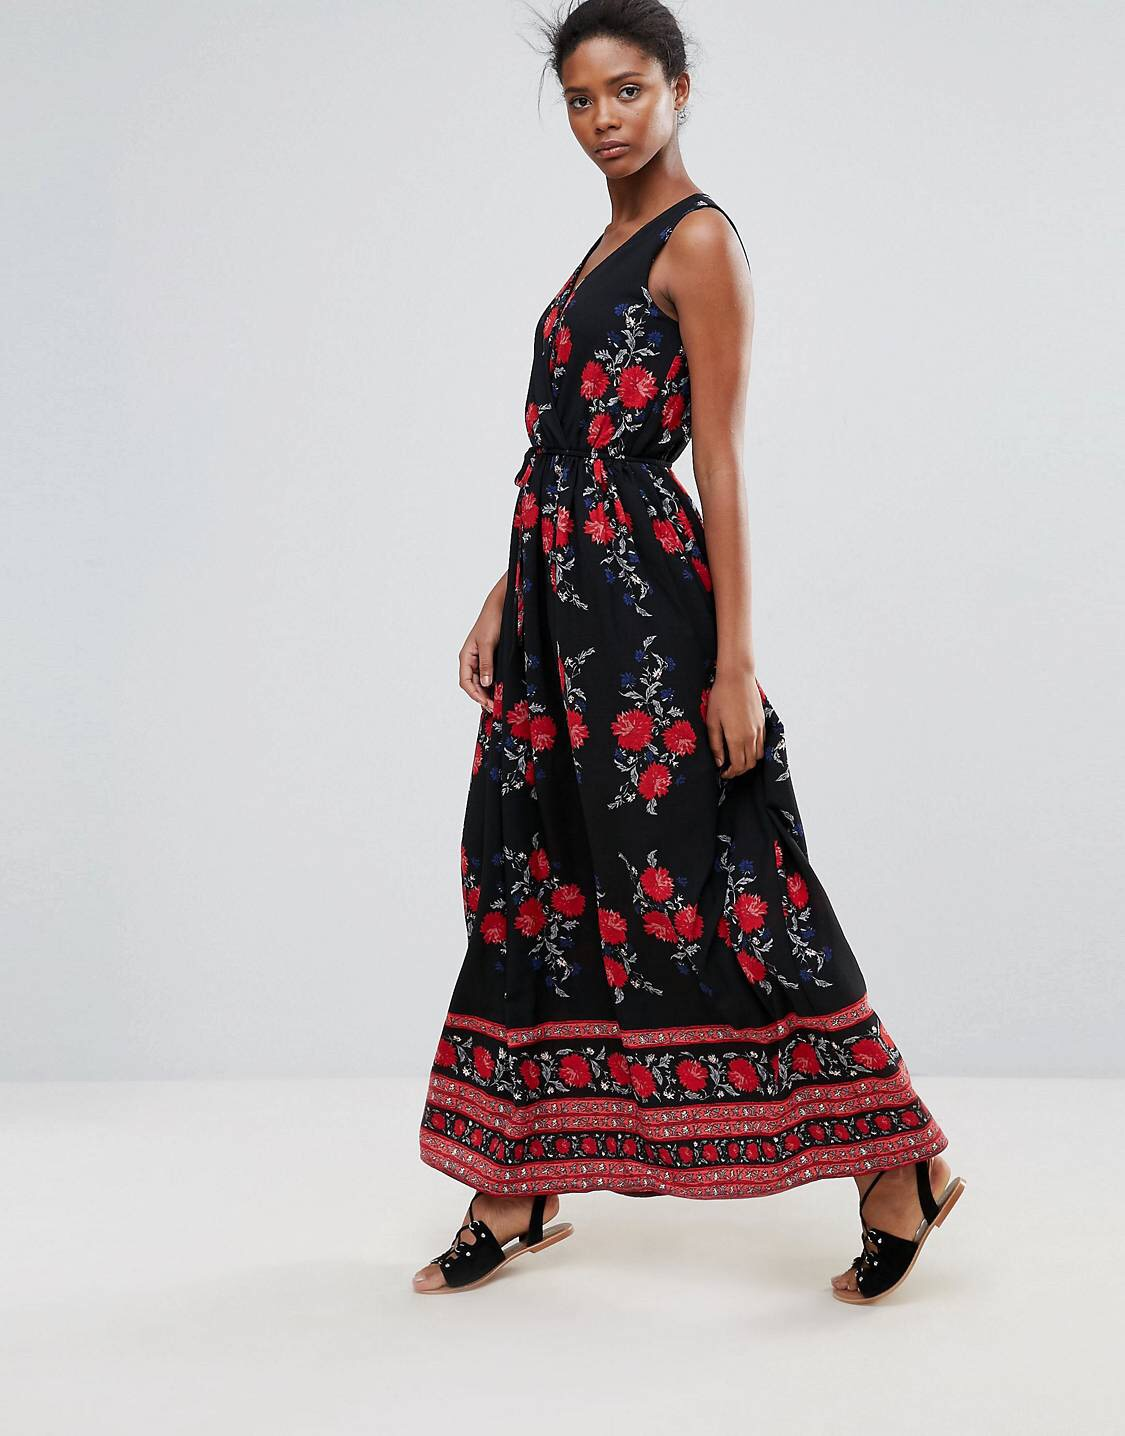 £24 Parisian Printed Maxi Dress - Know someone going on holiday soon? Gift them this and tell em to skip down the cobblestone street with their fruit basket and straw hat like the Tuscan beauty they are.